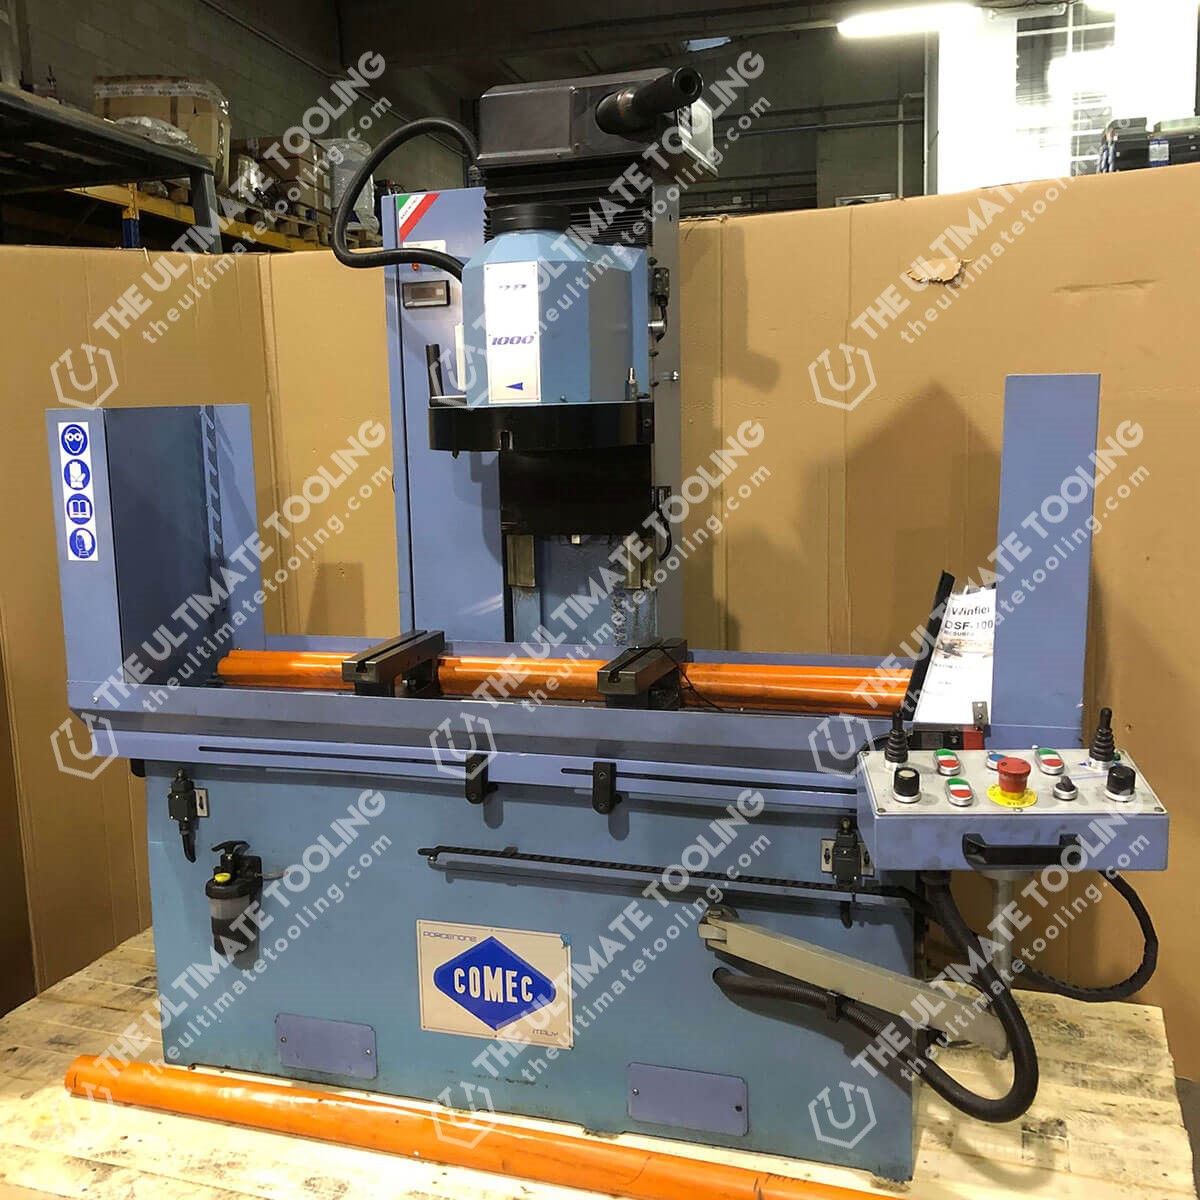 MU754 - COMEC RP1000 Used Cylinder Head Resurfacing Machine